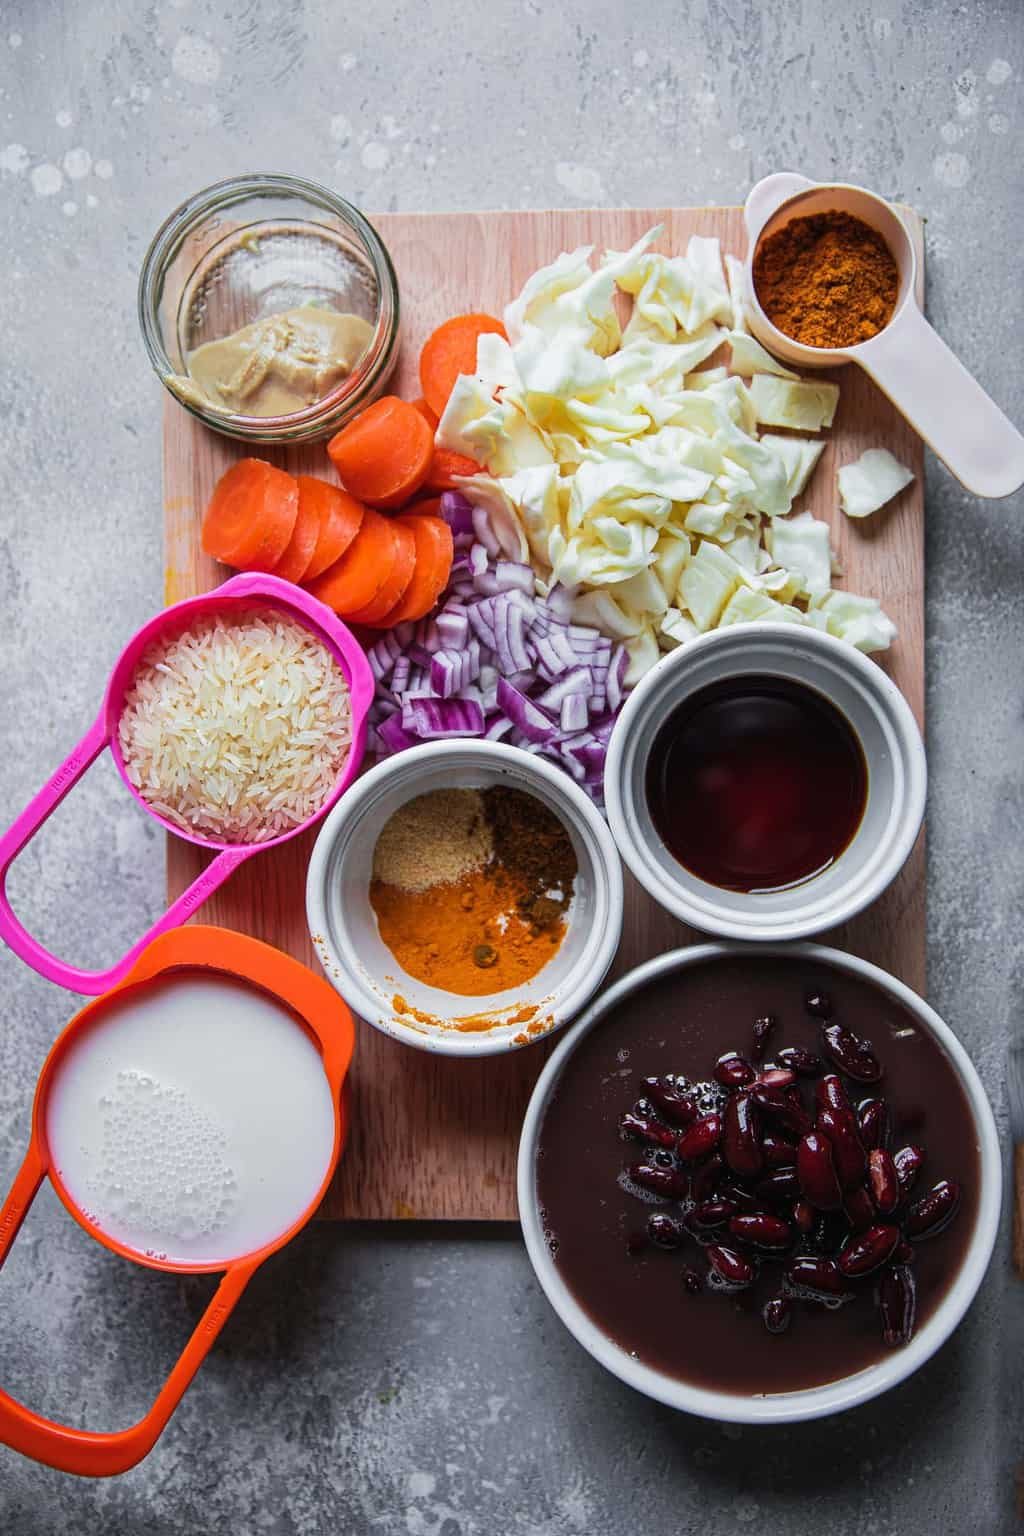 Ingredients for vegan red beans and rice